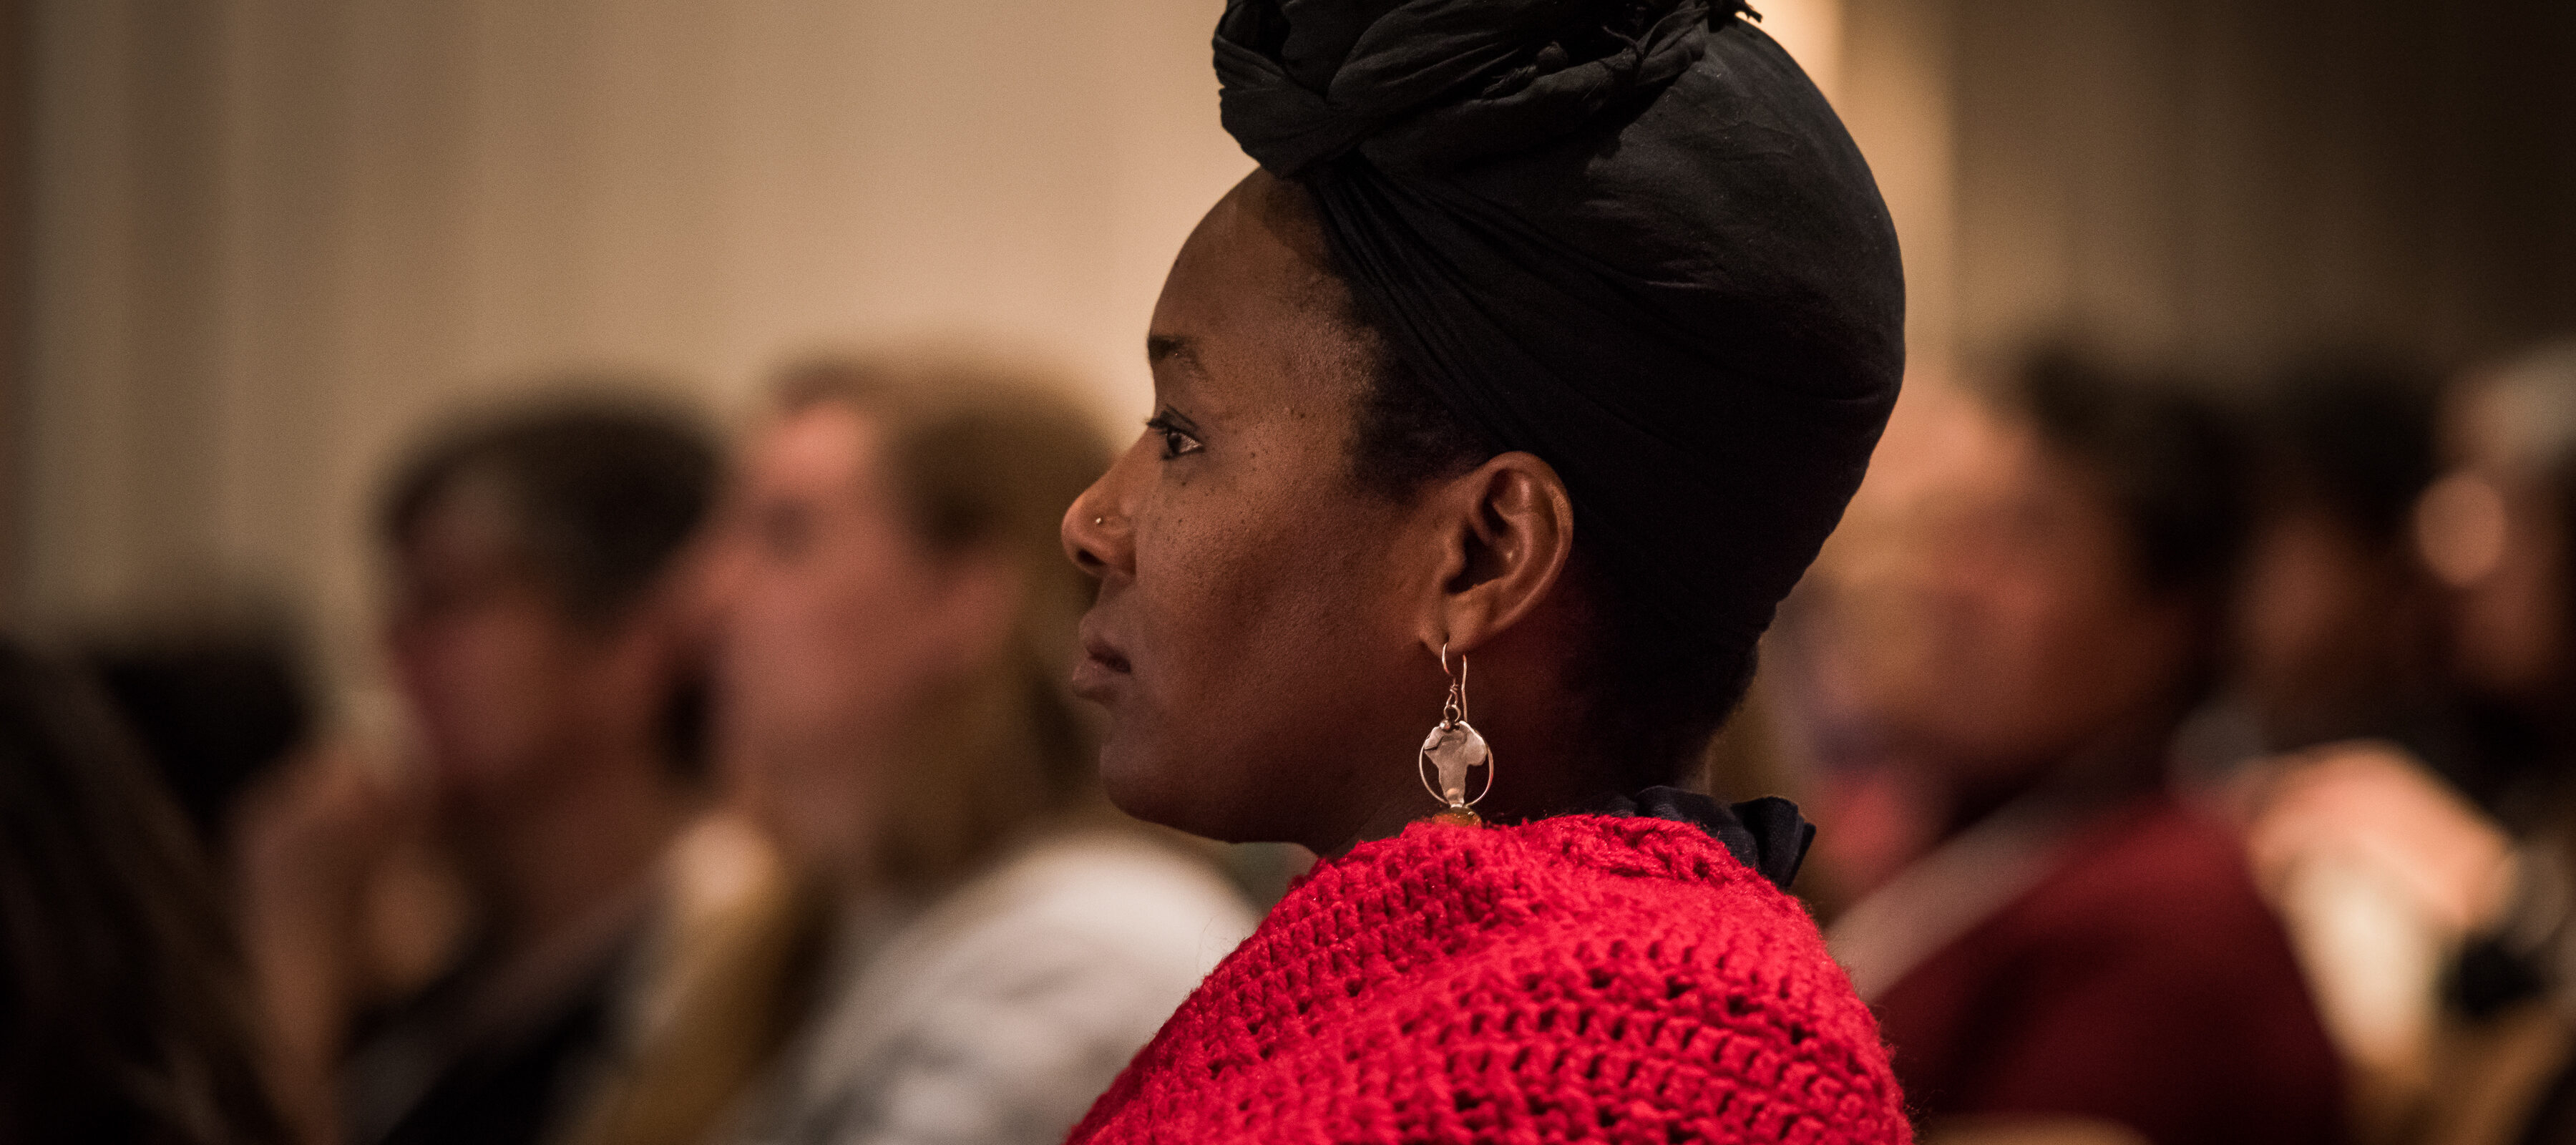 A dark-skinned adult sitting in profile, seen from the shoulders up. They wear a red sweater, gold earrings, and their hair tied up in a black headscarf. They sit in an auditorium, with blurry figures filling the seats in the background.